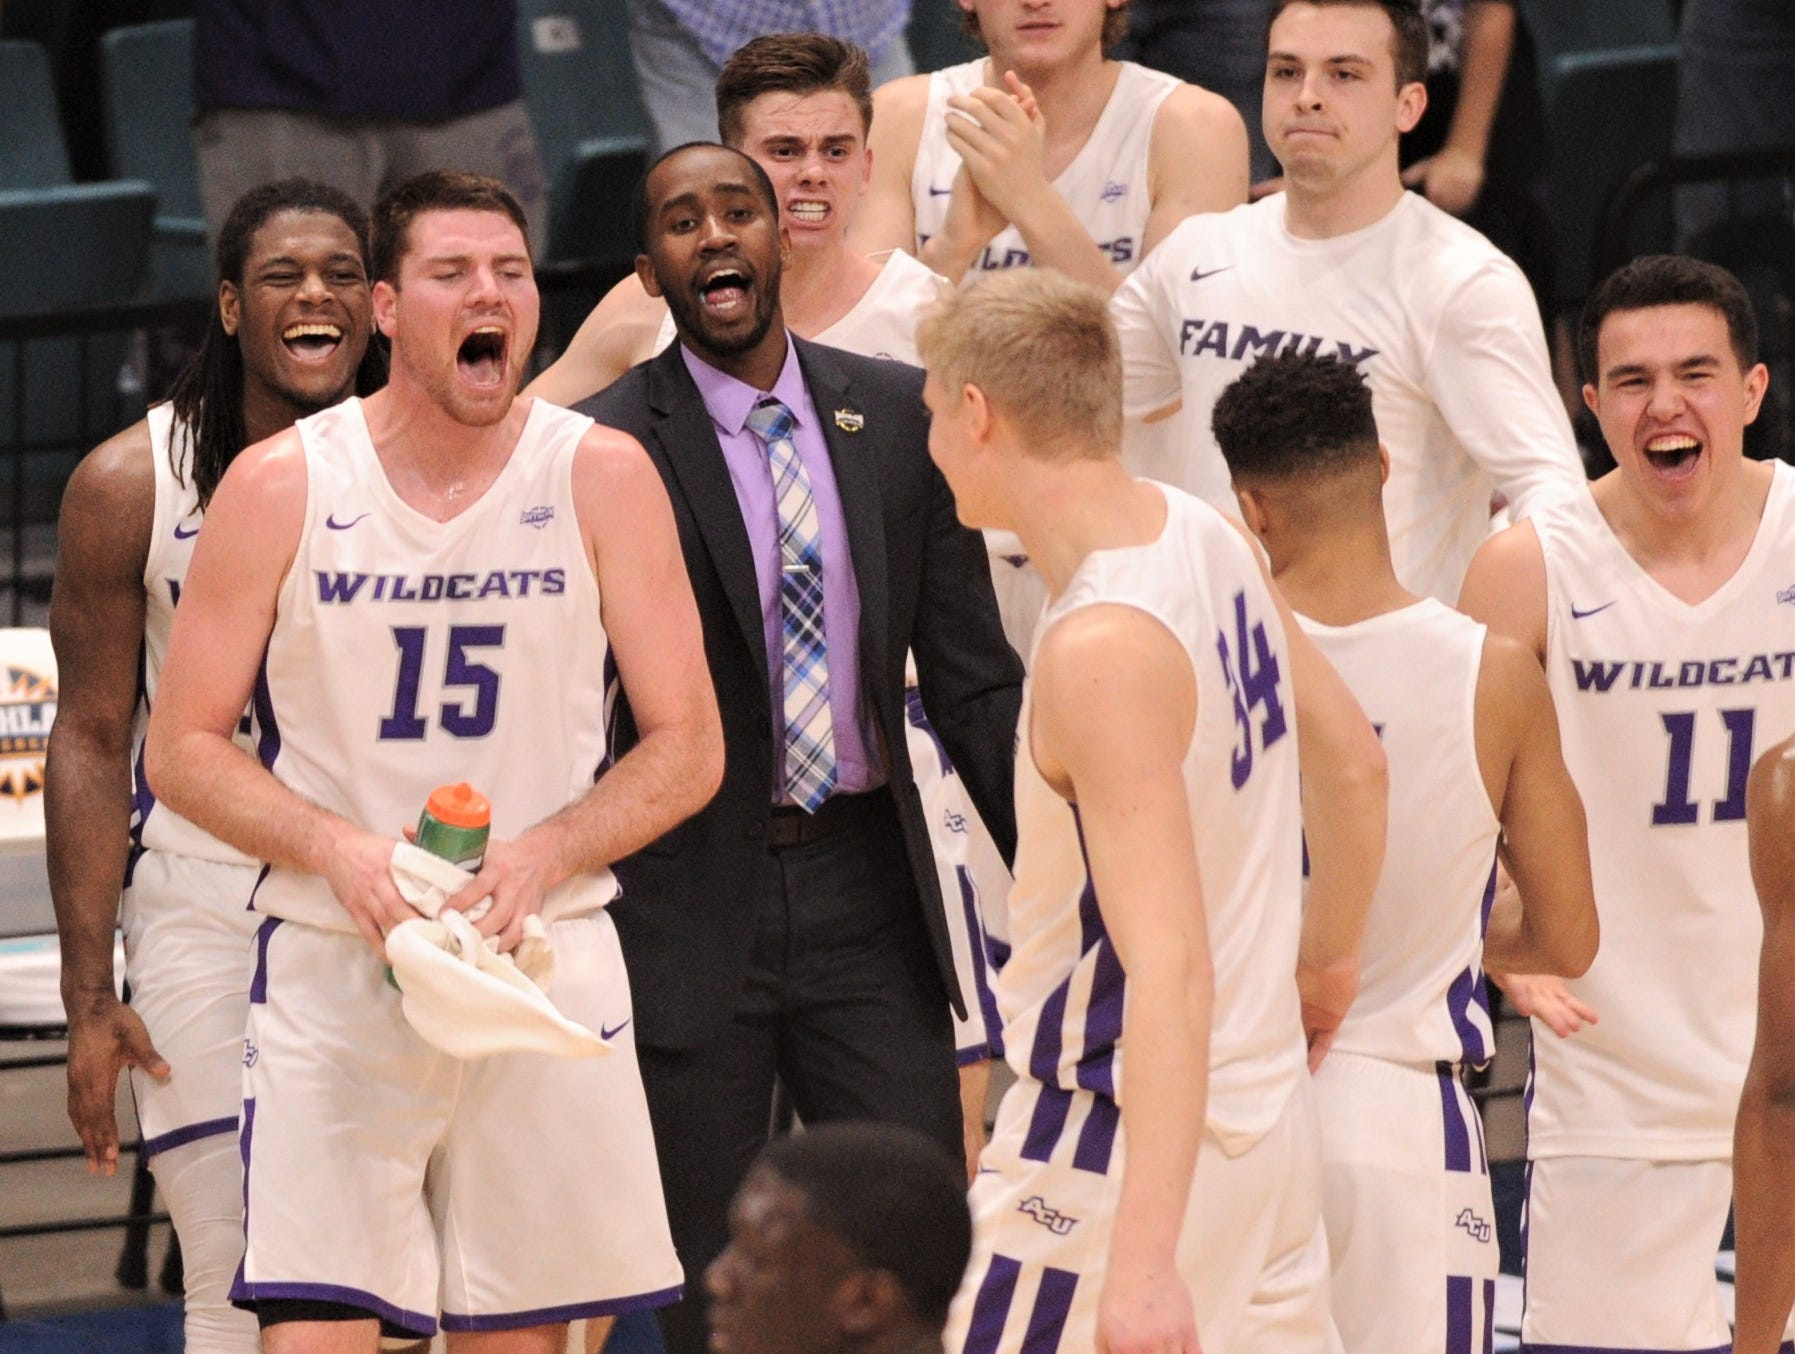 ACU's Hayden Farquhar (15) and the rest of his teammates greet players as they come to the bench during a timeout against New Orleans. ACU beat the Privateers 77-60 to win the Southland Conference Tournament title Saturday, March 16, 2019, at the Merrell Center in Katy.